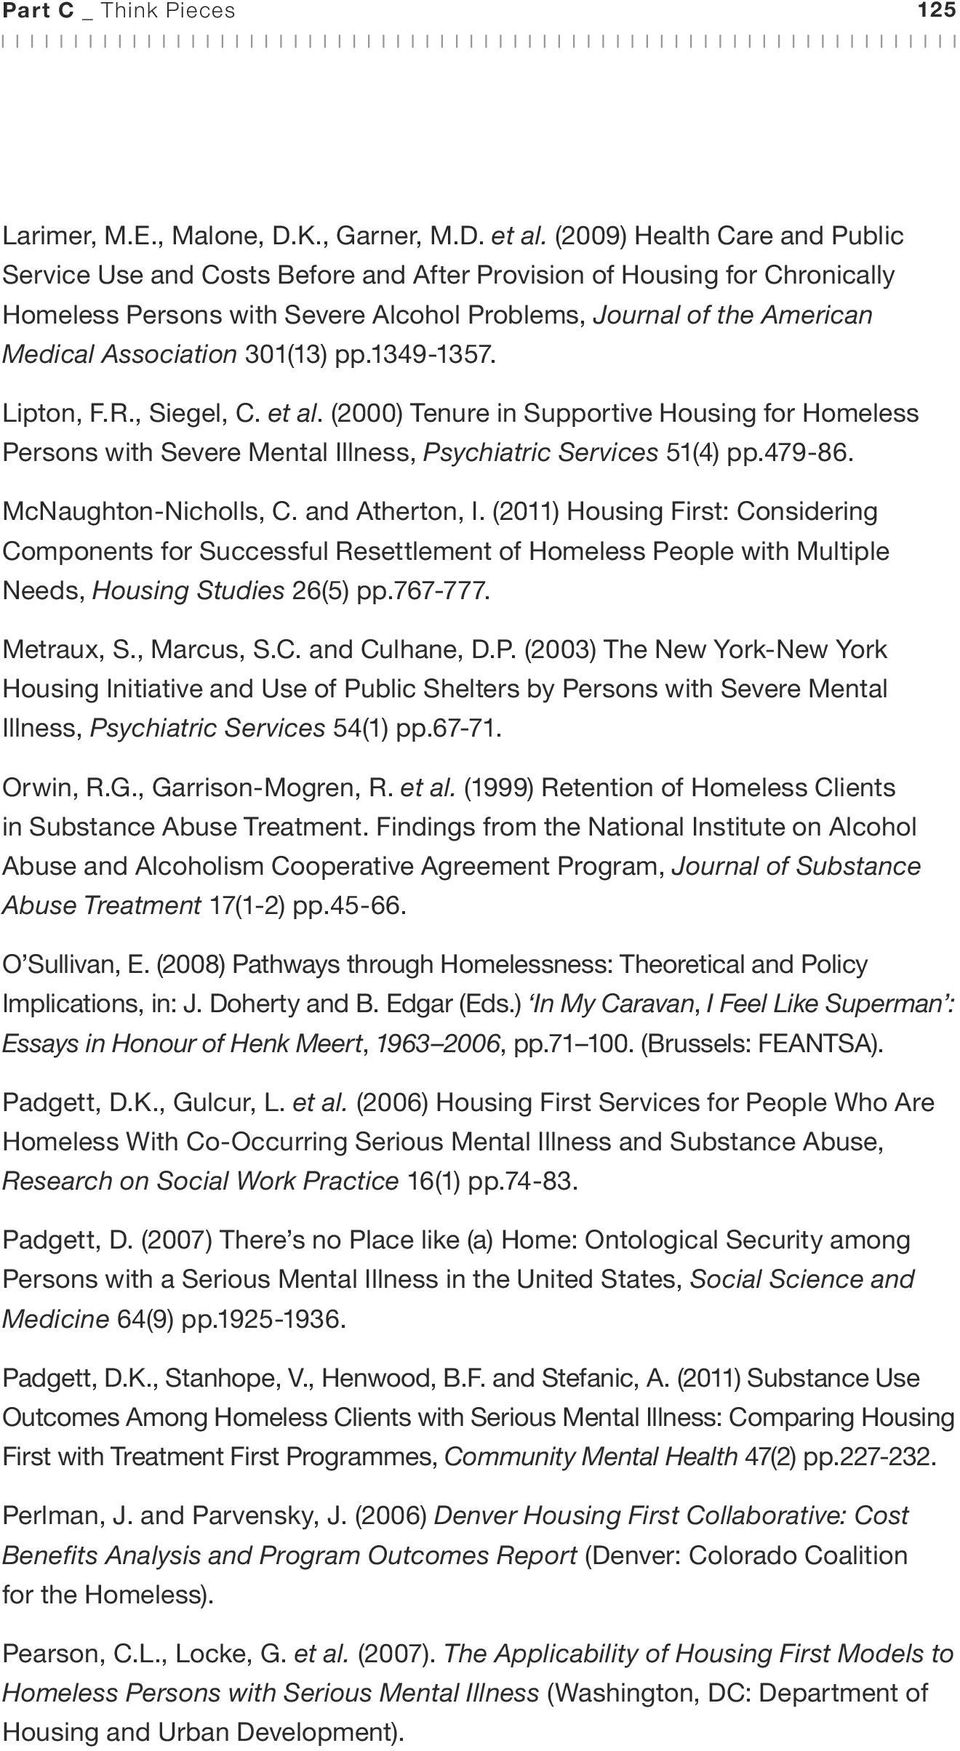 301(13) pp.1349-1357. Lipton, F.R., Siegel, C. et al. (2000) Tenure in Supportive Housing for Homeless Persons with Severe Mental Illness, Psychiatric Services 51(4) pp.479-86. McNaughton-Nicholls, C.